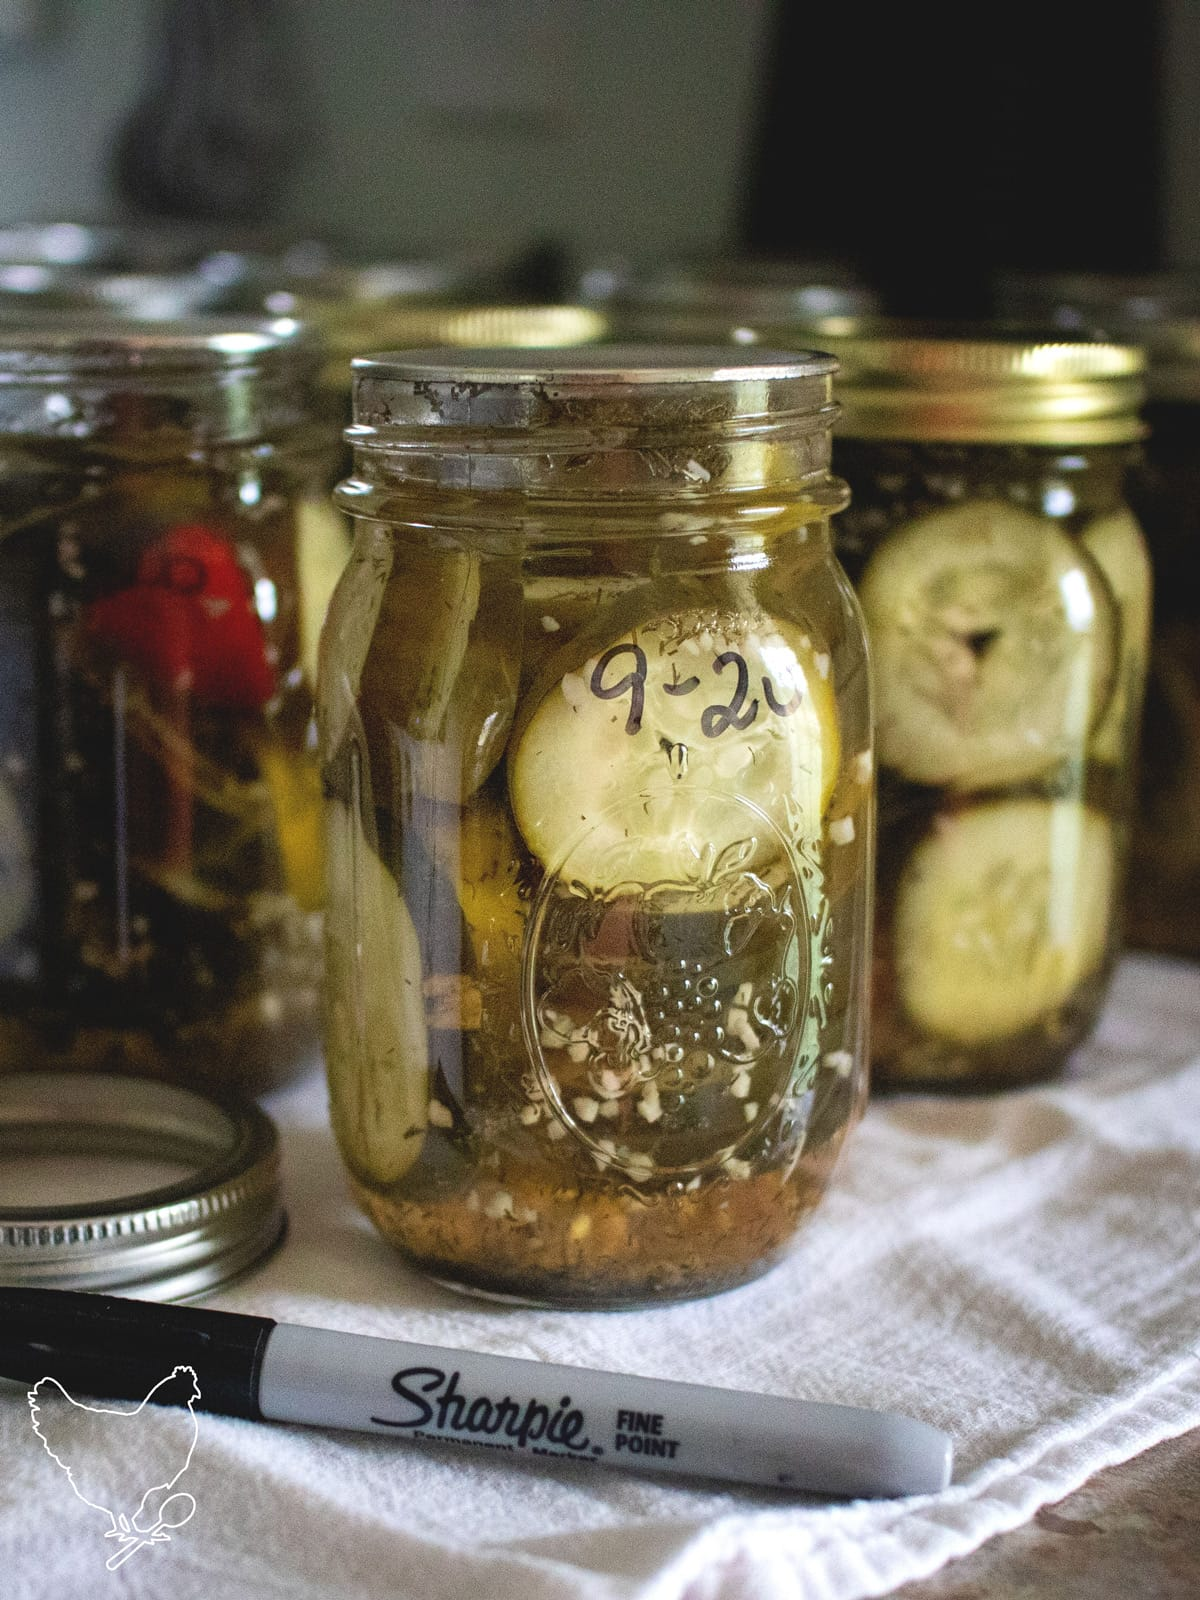 These spicy dill pickles are packed full of flavor, and not too sweet. I can barely keep jars of them in the pantry, because they get eaten so fast!